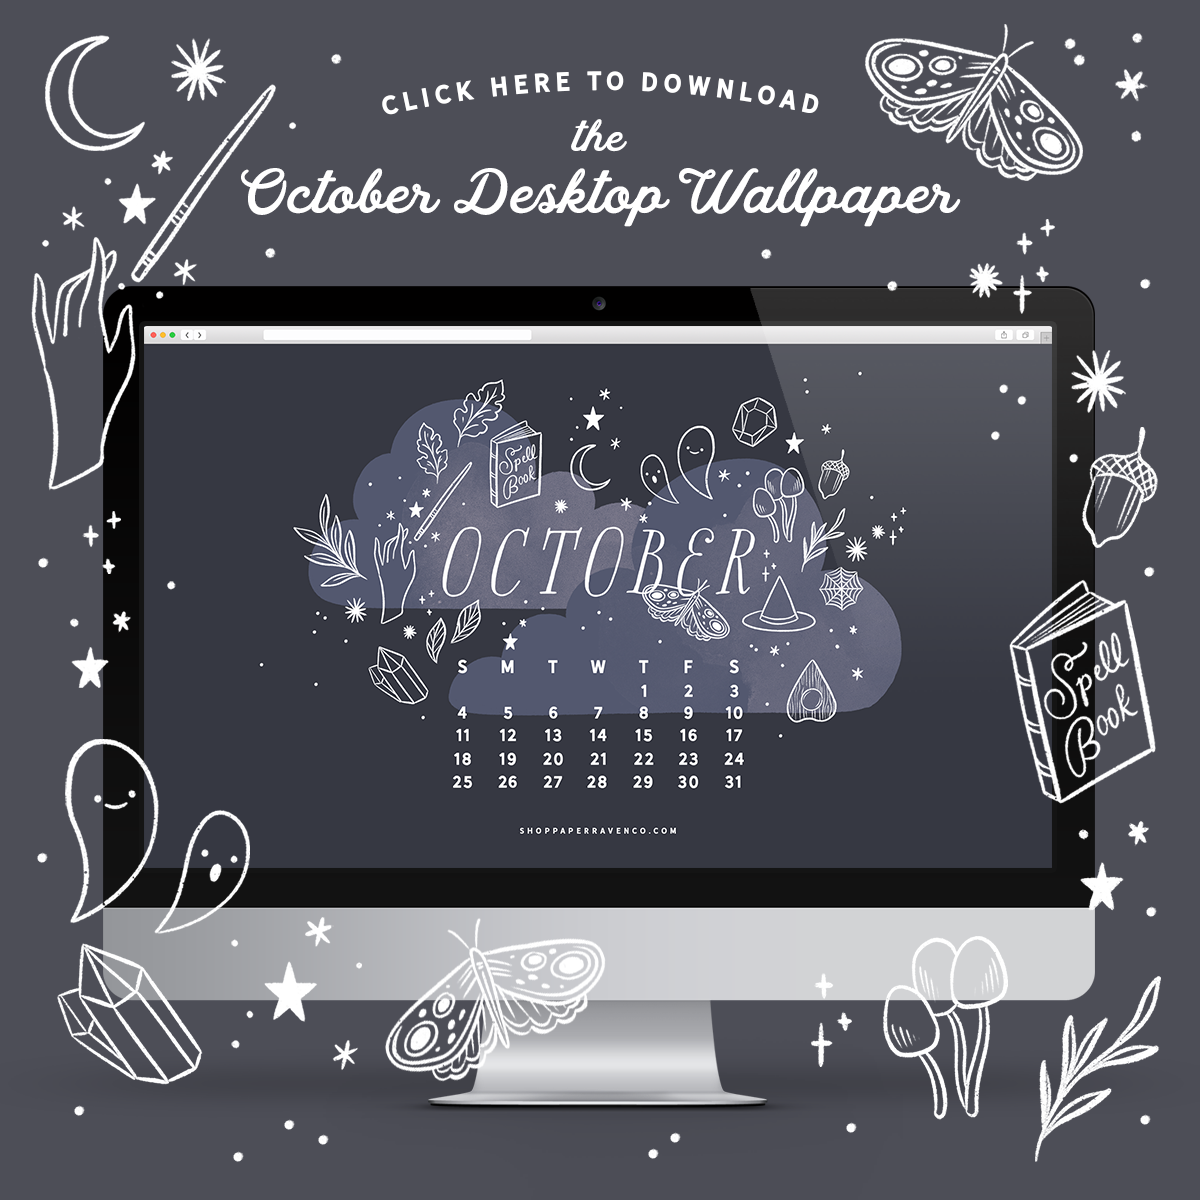 October 2020 Illustrated Desktop Wallpaper by Paper Raven Co. | ShopPaperRavenCo.com #dressyourtech #desktopwallpaper